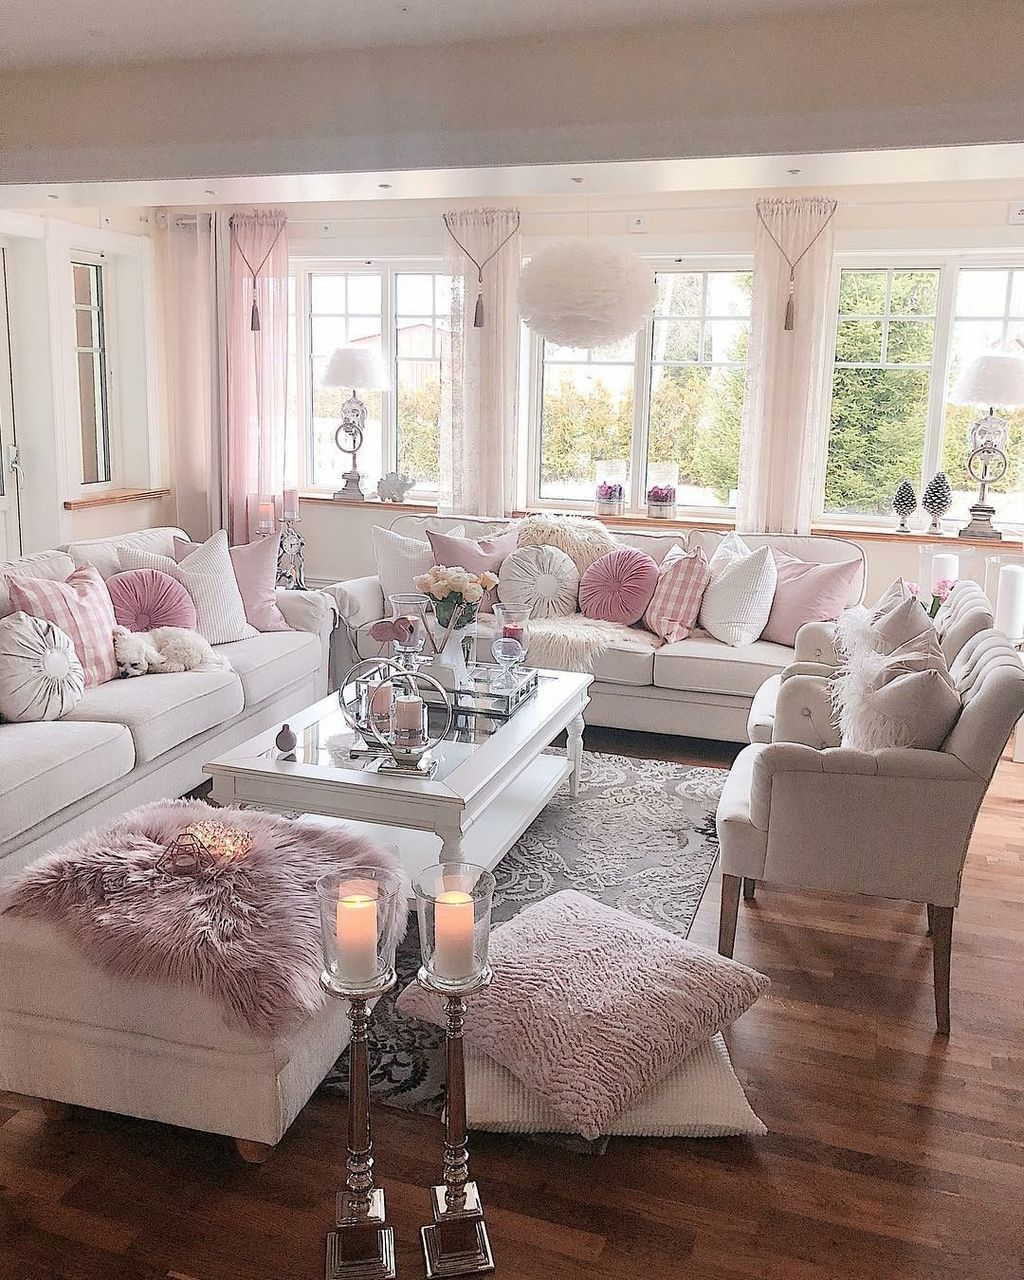 Shabby Chic Living Room - Shabby Chic Style Living Room Vintage Ideas 14